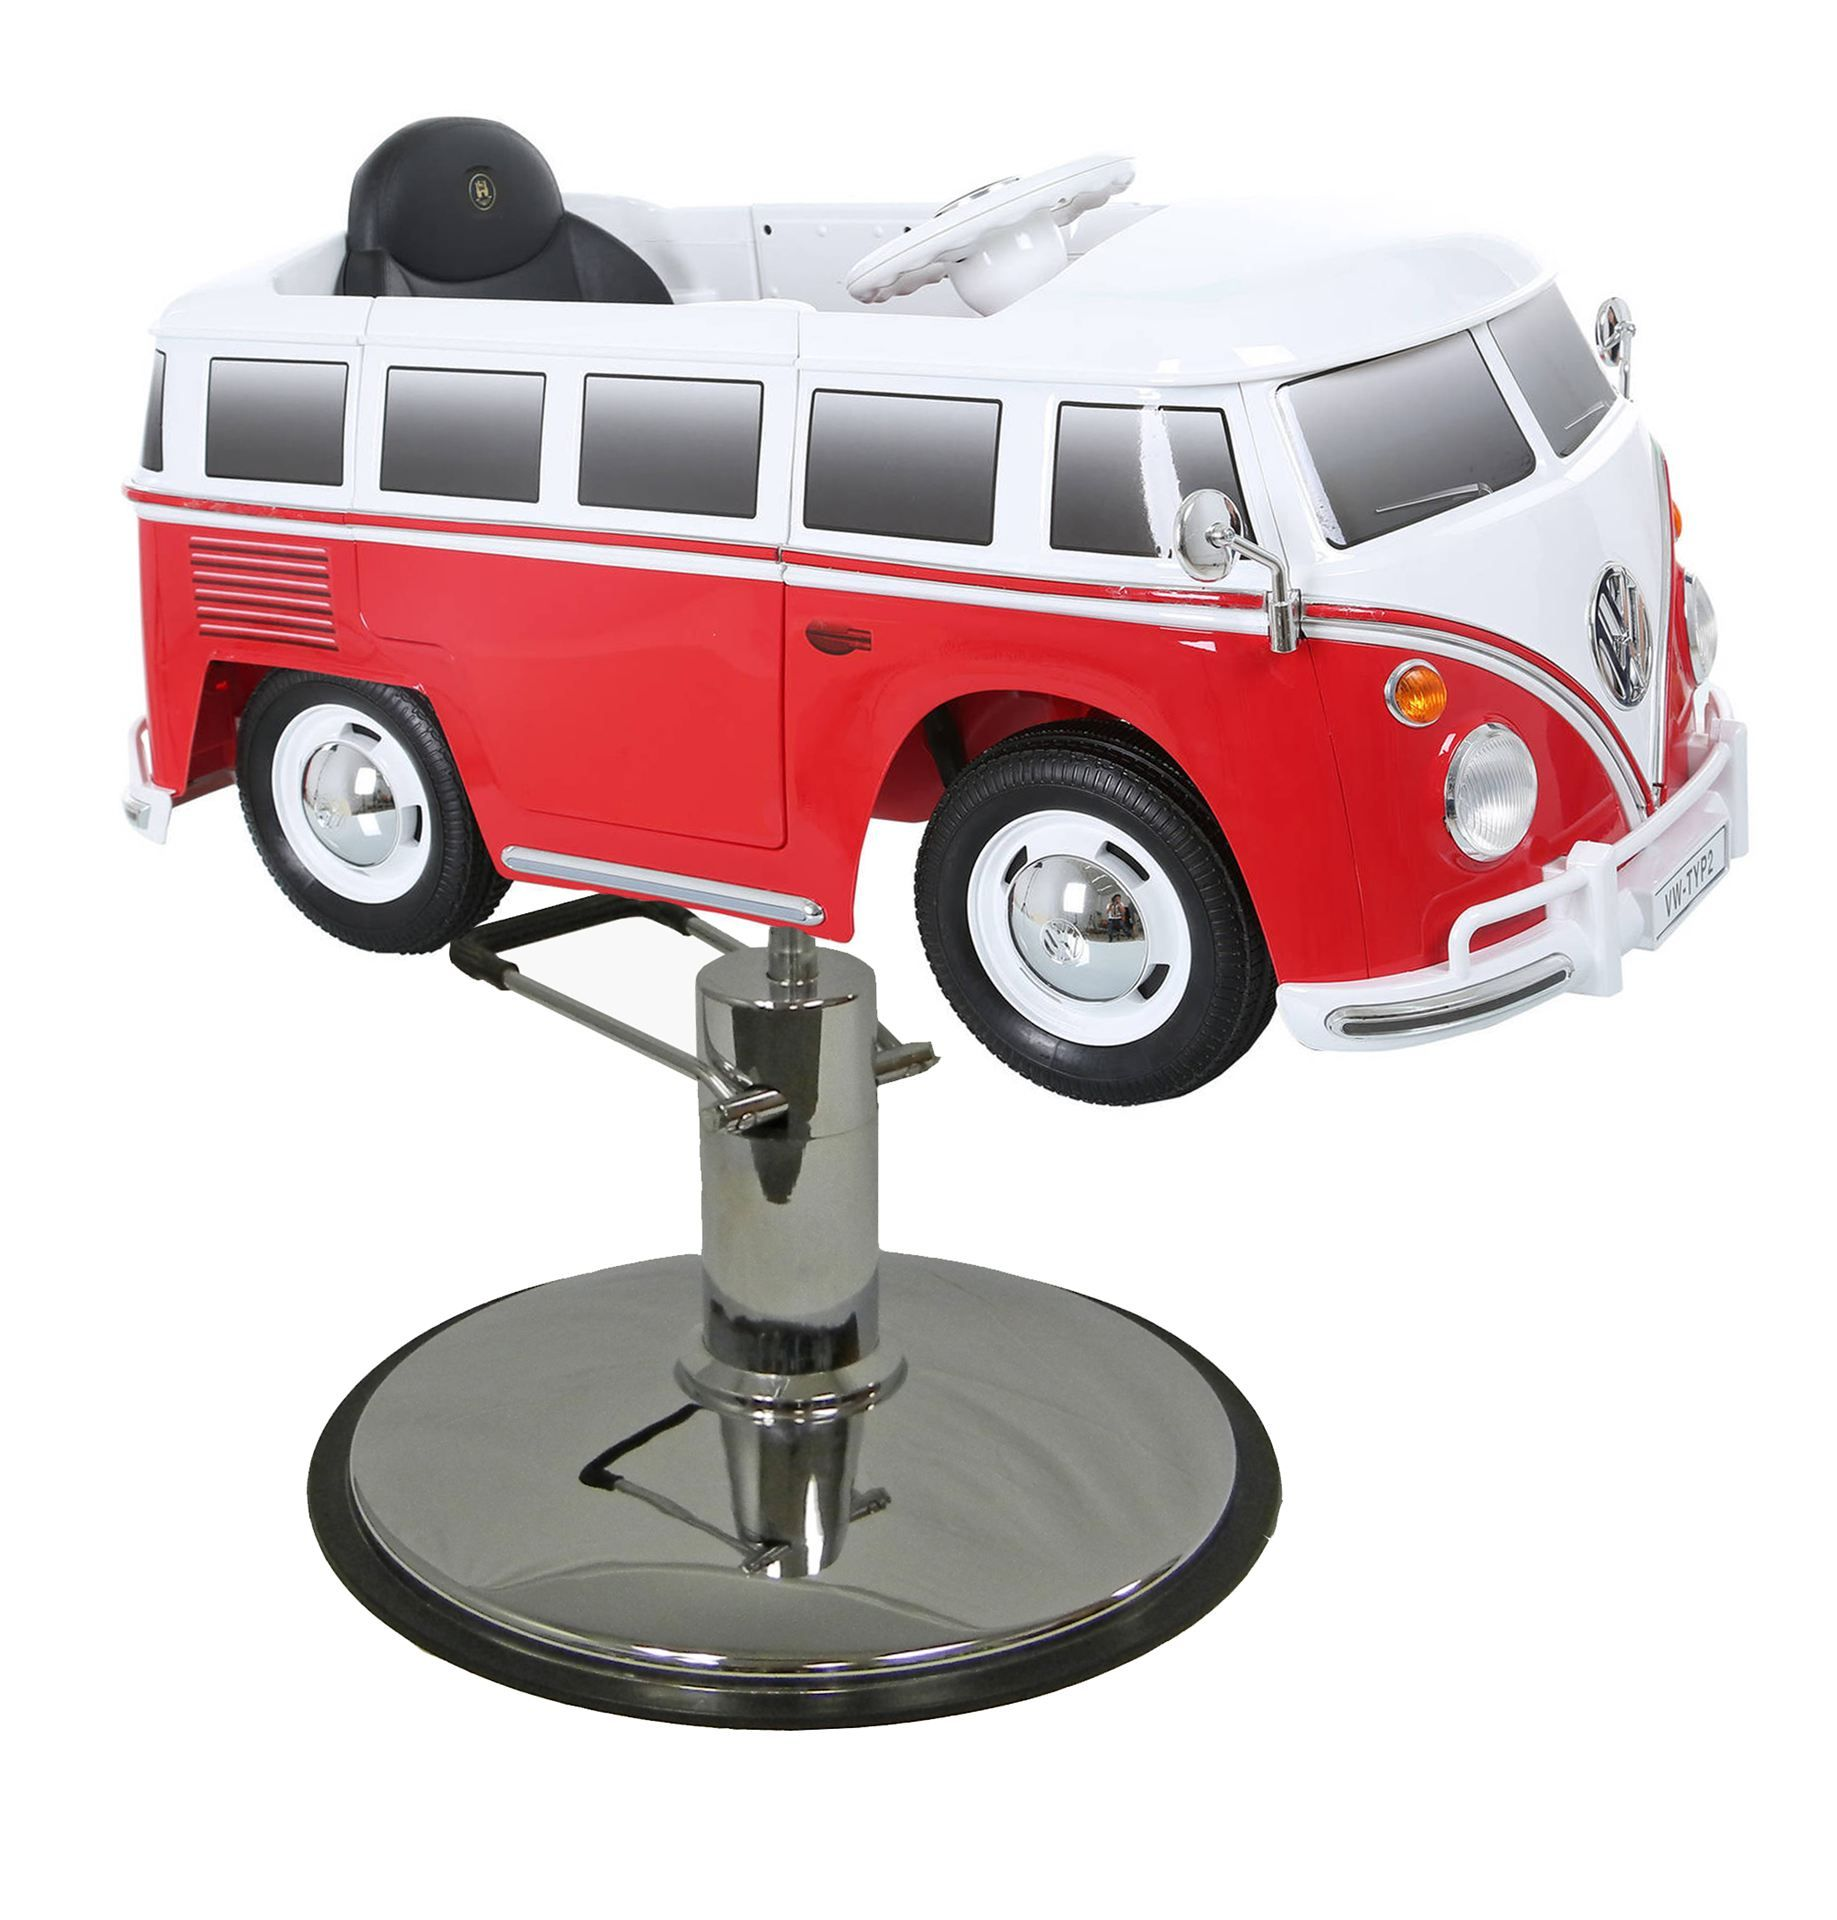 Amazing Show Details For Red Vw Bus Styling Chair With Your Choice Squirreltailoven Fun Painted Chair Ideas Images Squirreltailovenorg